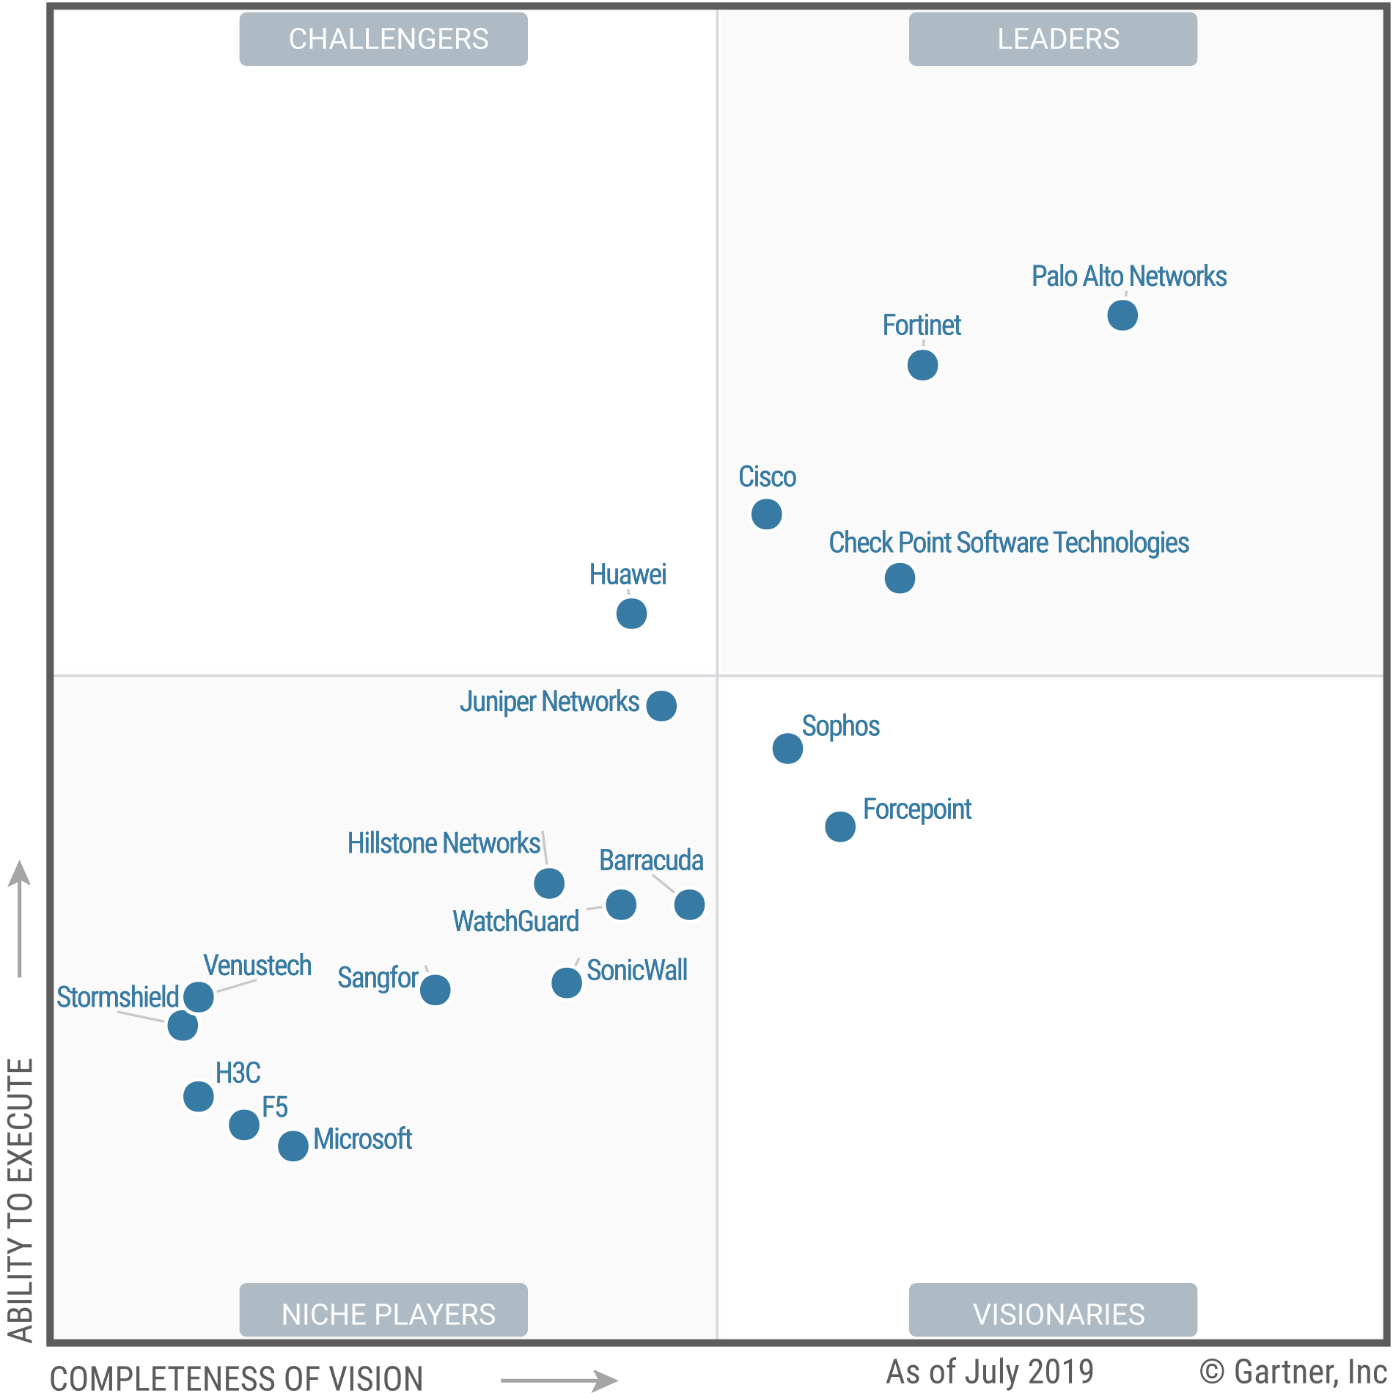 Magic Quadrant for (Enterprise) Network Firewalls 2019 (G00375686)